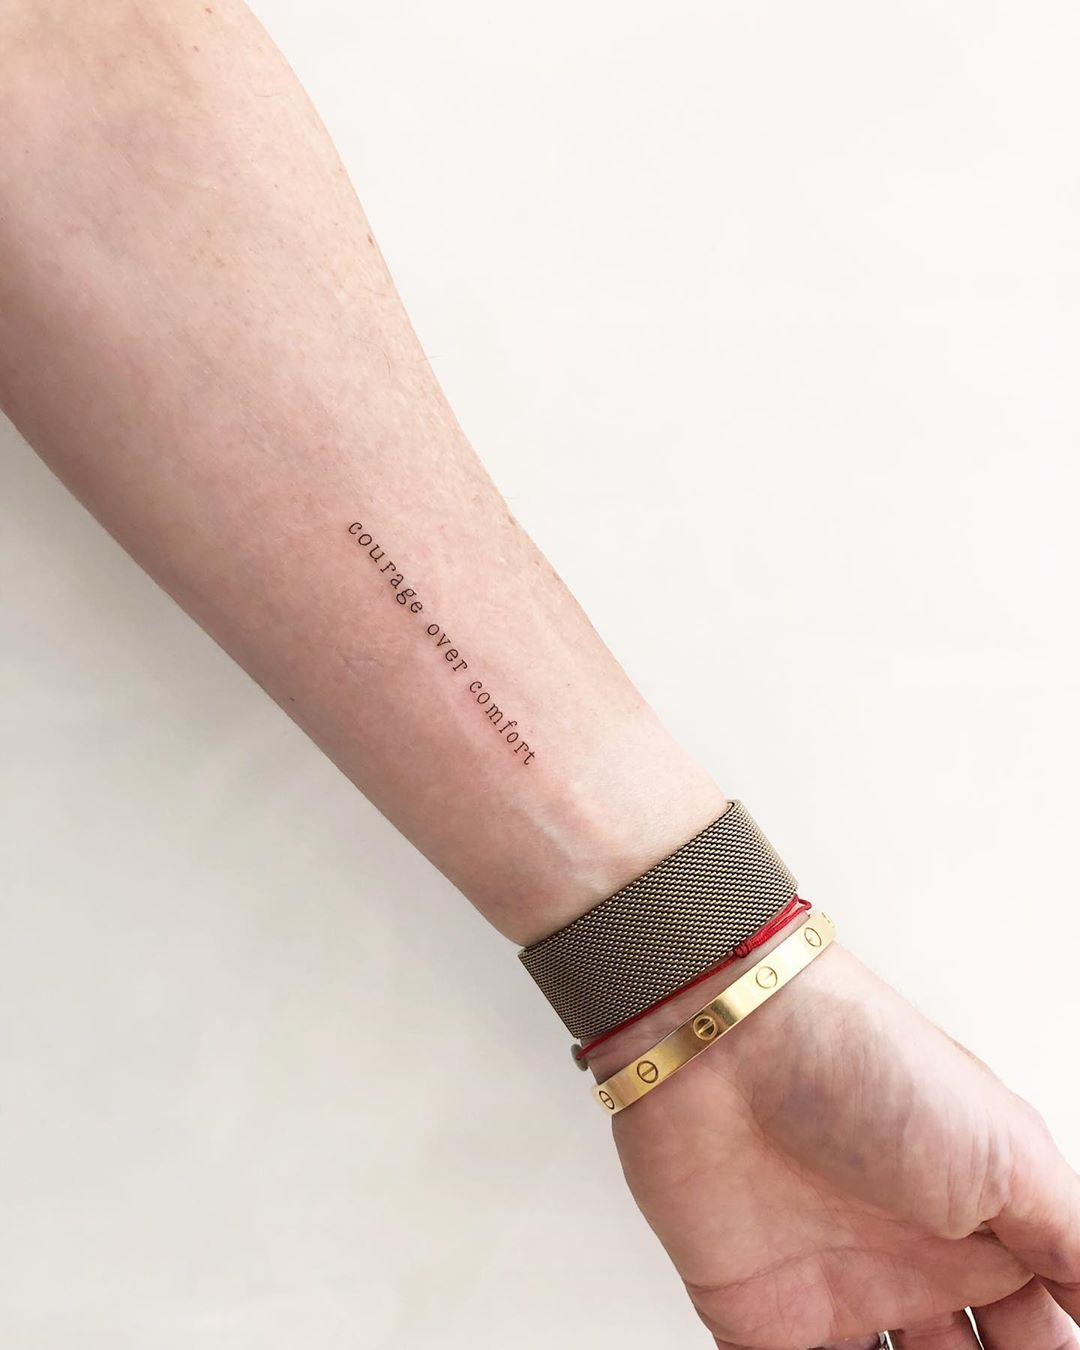 Courage over comfort tattoo by @joannamroman